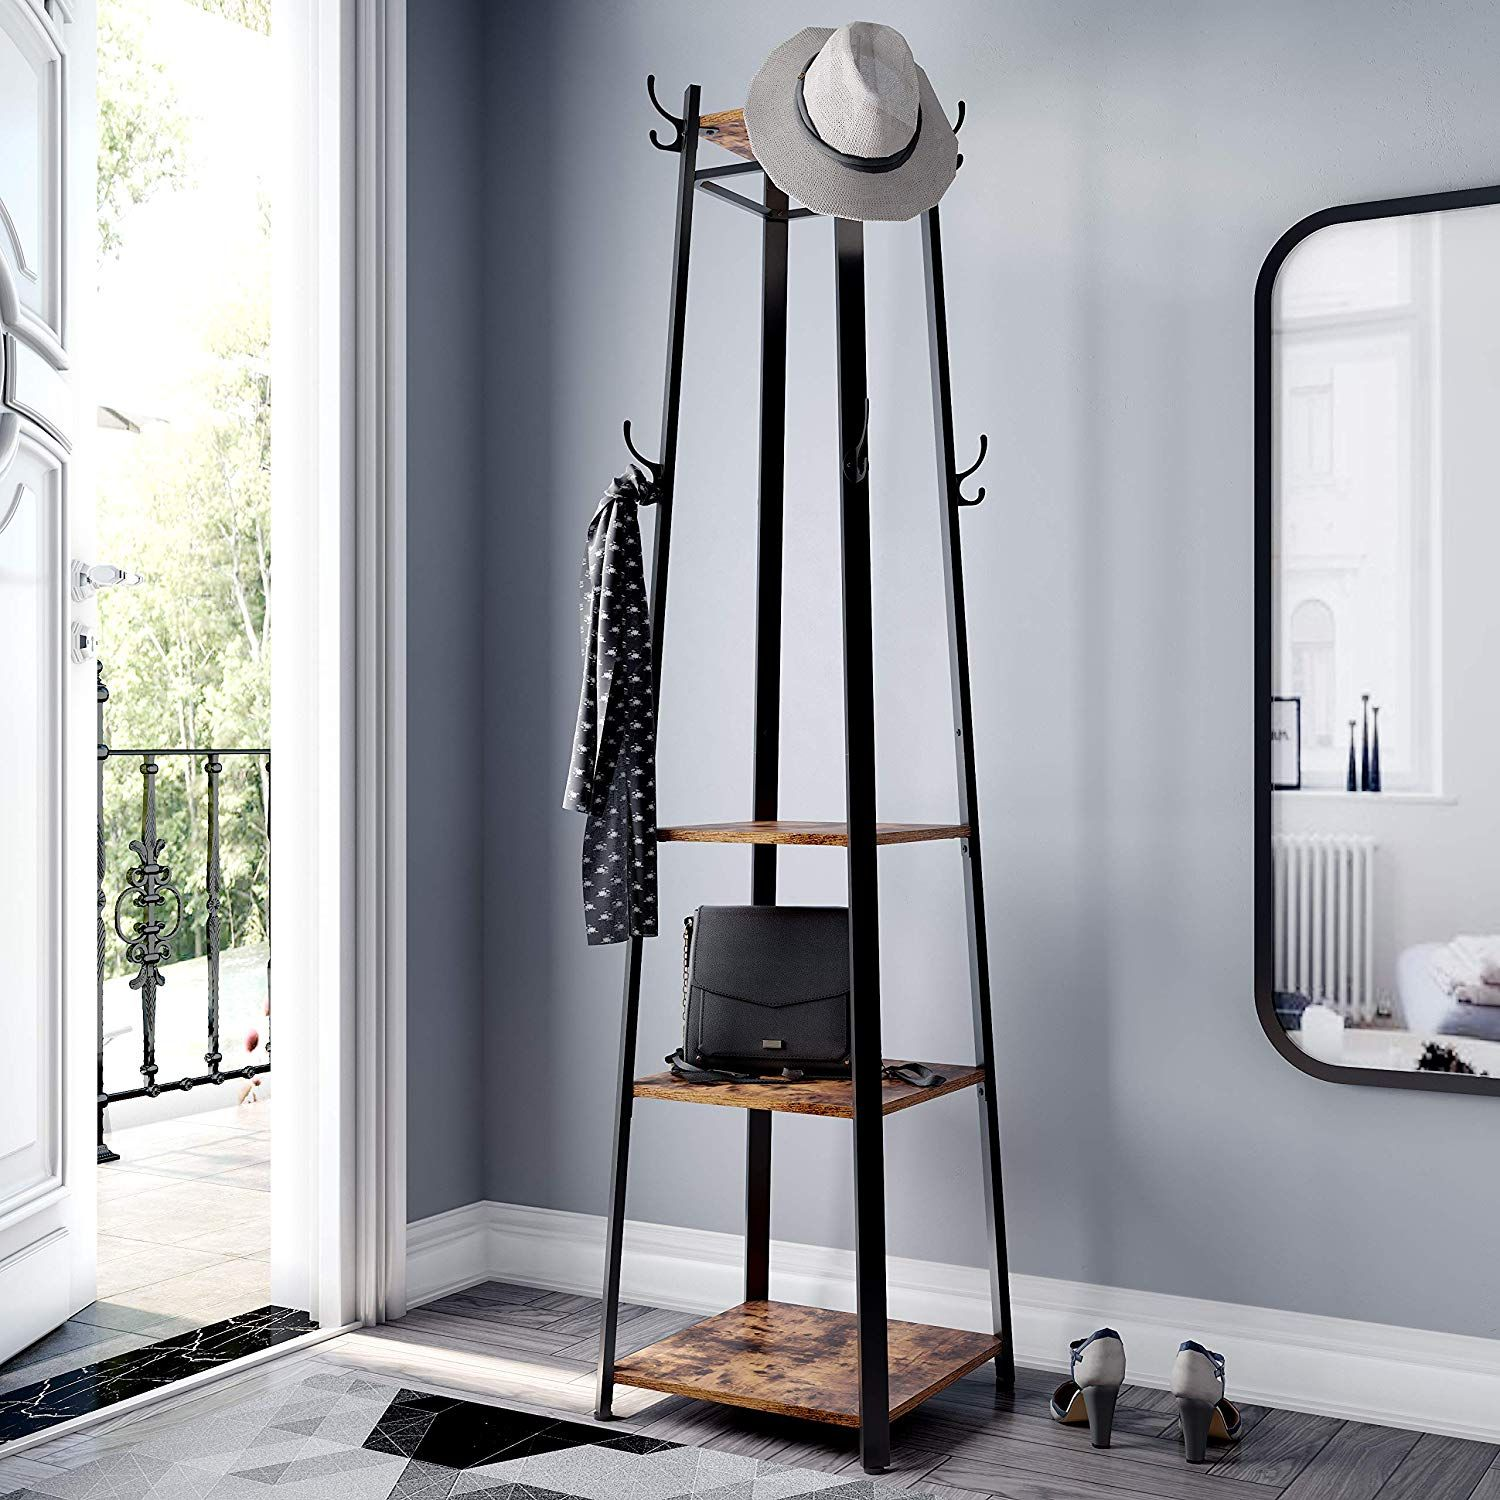 Two Birds With One Stone This Stylish Coat Rack Brings A Vintage Touch To Your Entrance While At The Same Time C Carbon Loft Industrial Coat Rack Coat Stands